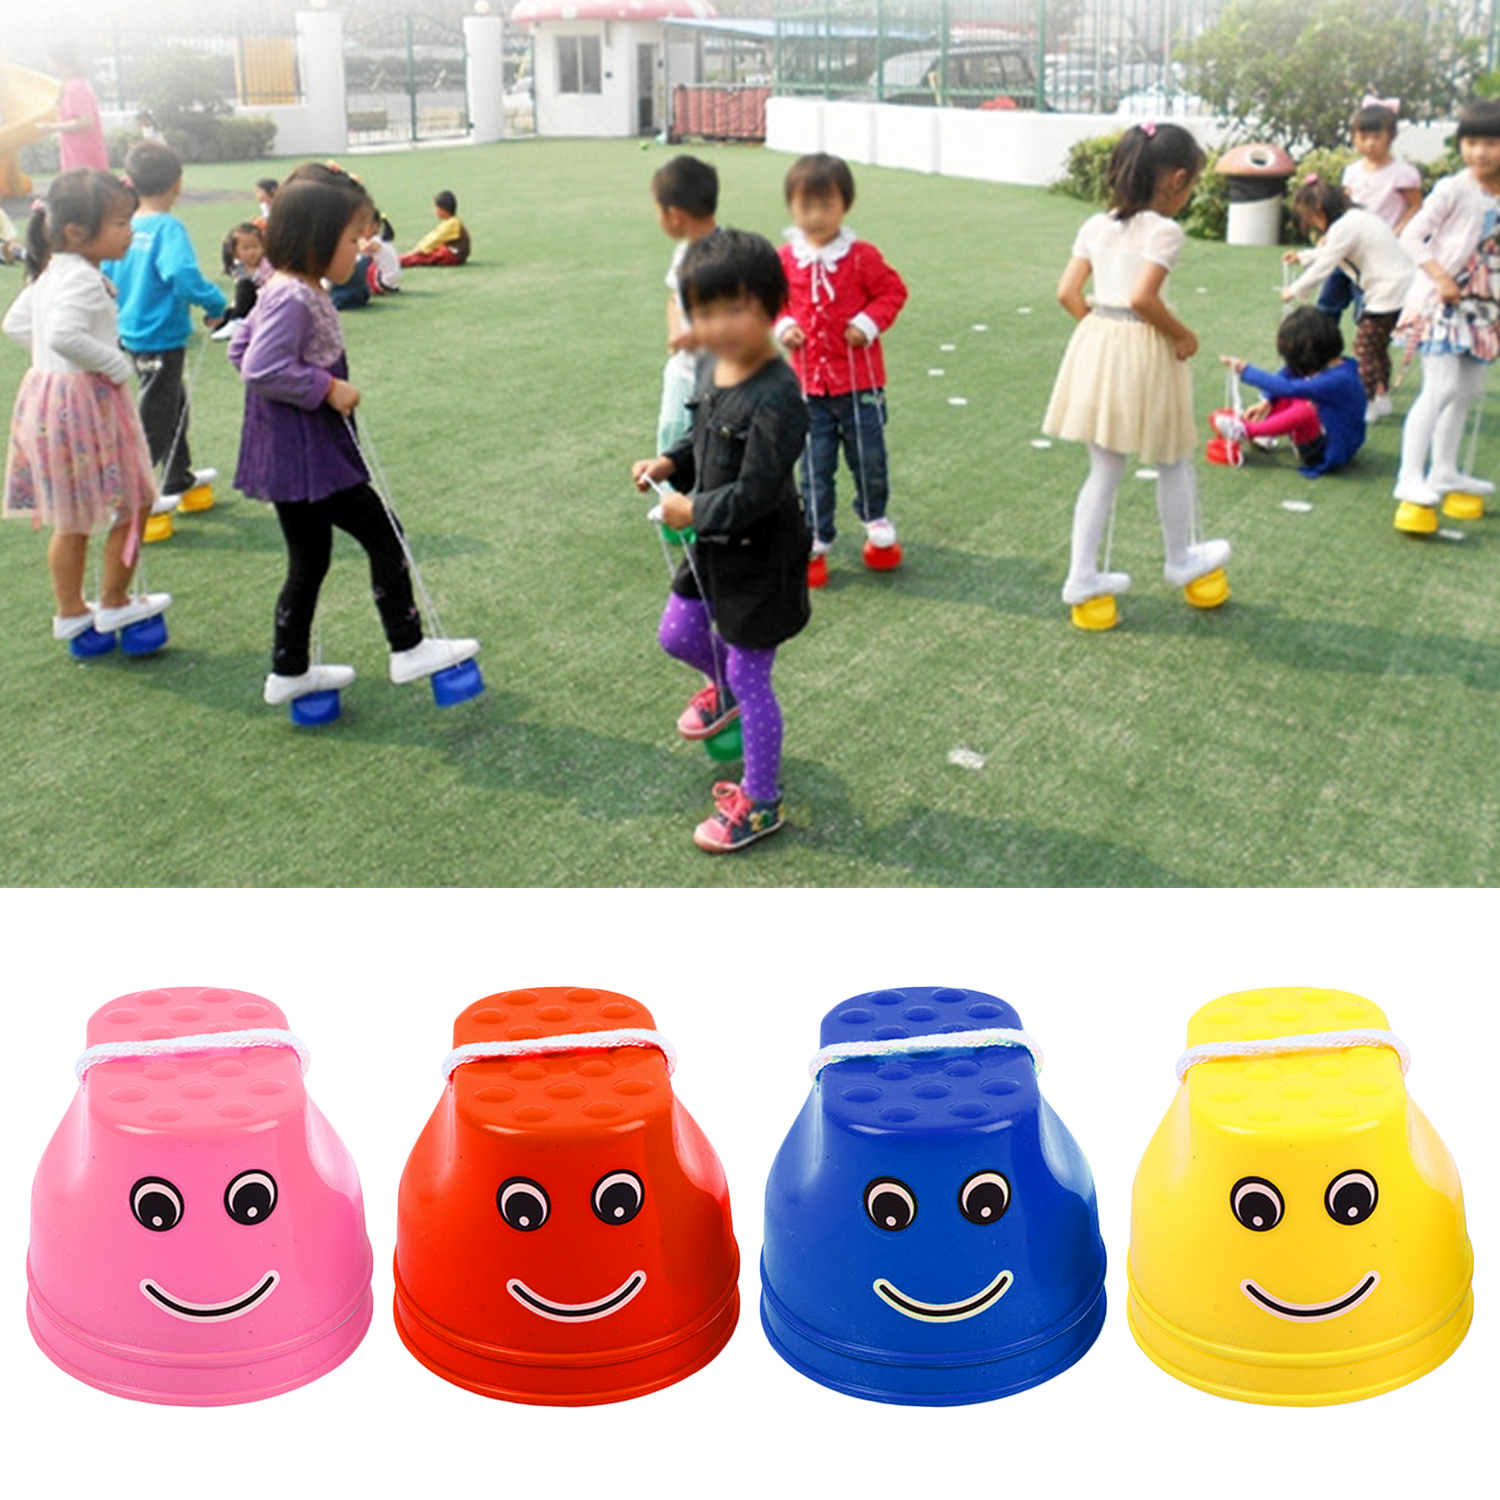 1 Pair Plastic Smile Face Walking Jumping Feet Stilts Balancing Shoes For Kids Children Outdoor Walker Sport Games Toy